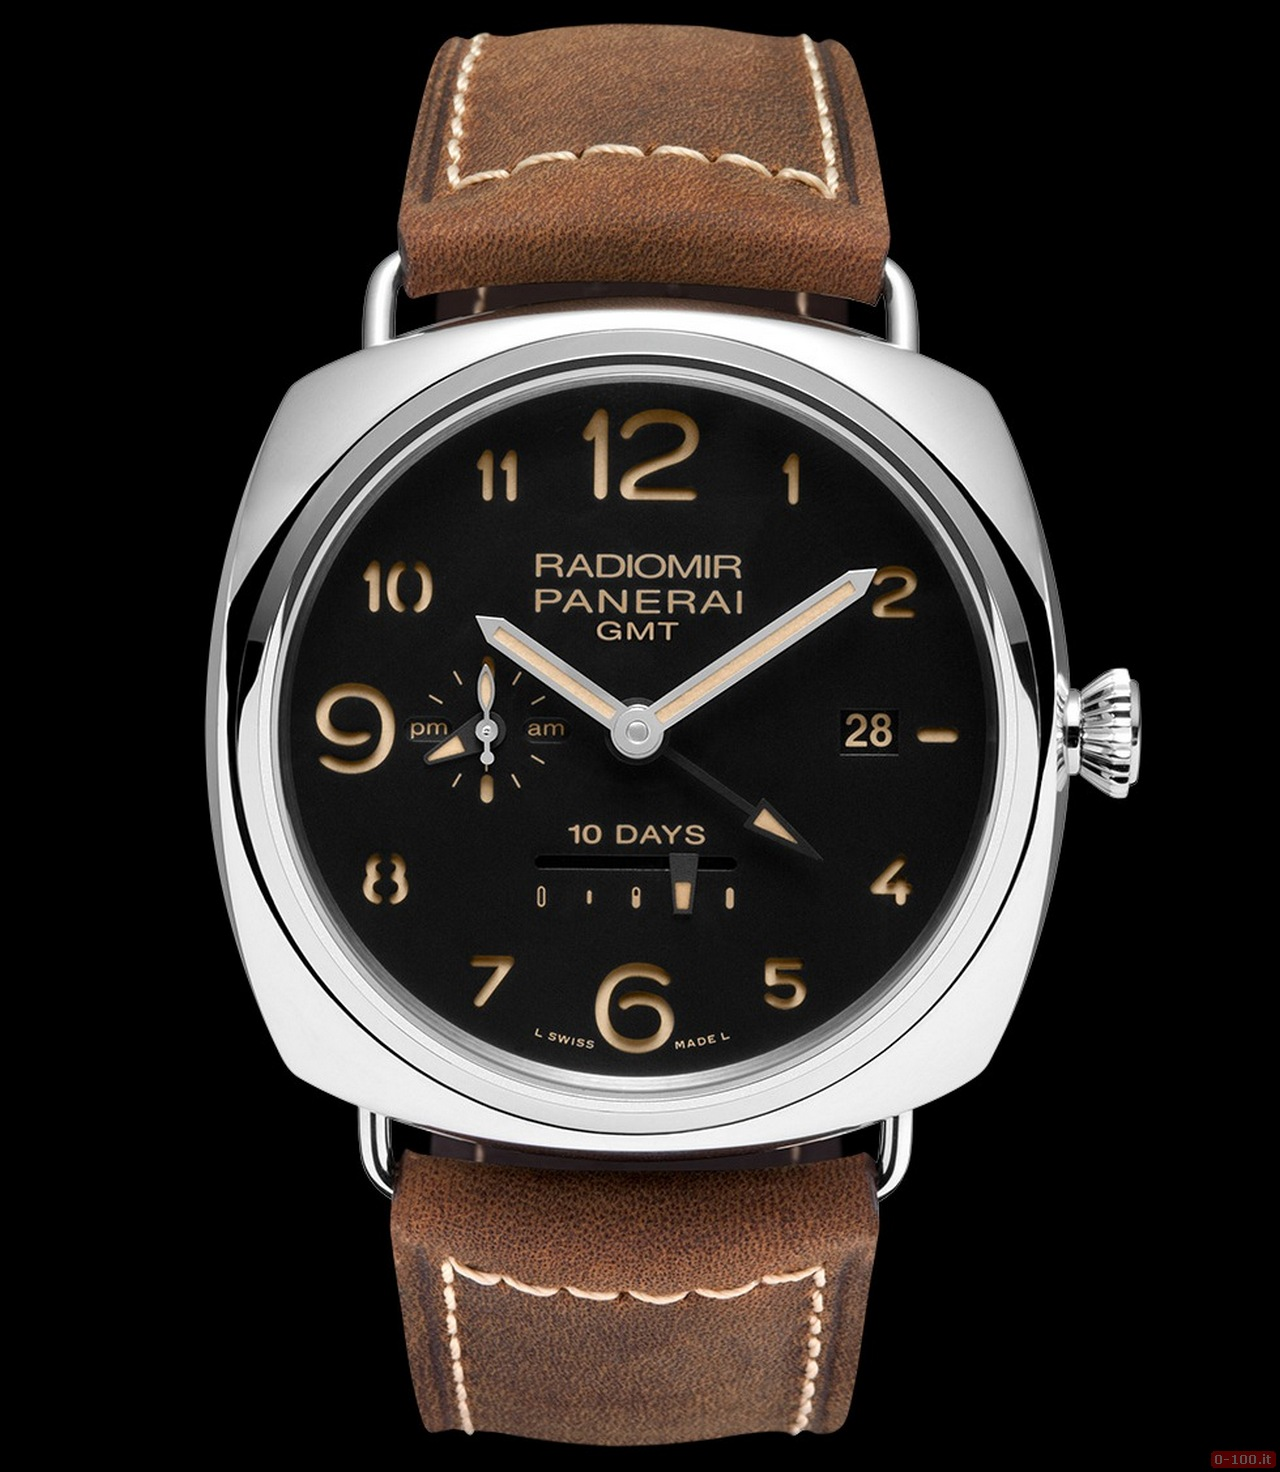 officine-panerai-luminor-marina-44-mm-e-radiomir-10-days-gmt-47mm-special-edition-per-venezia_0-1005